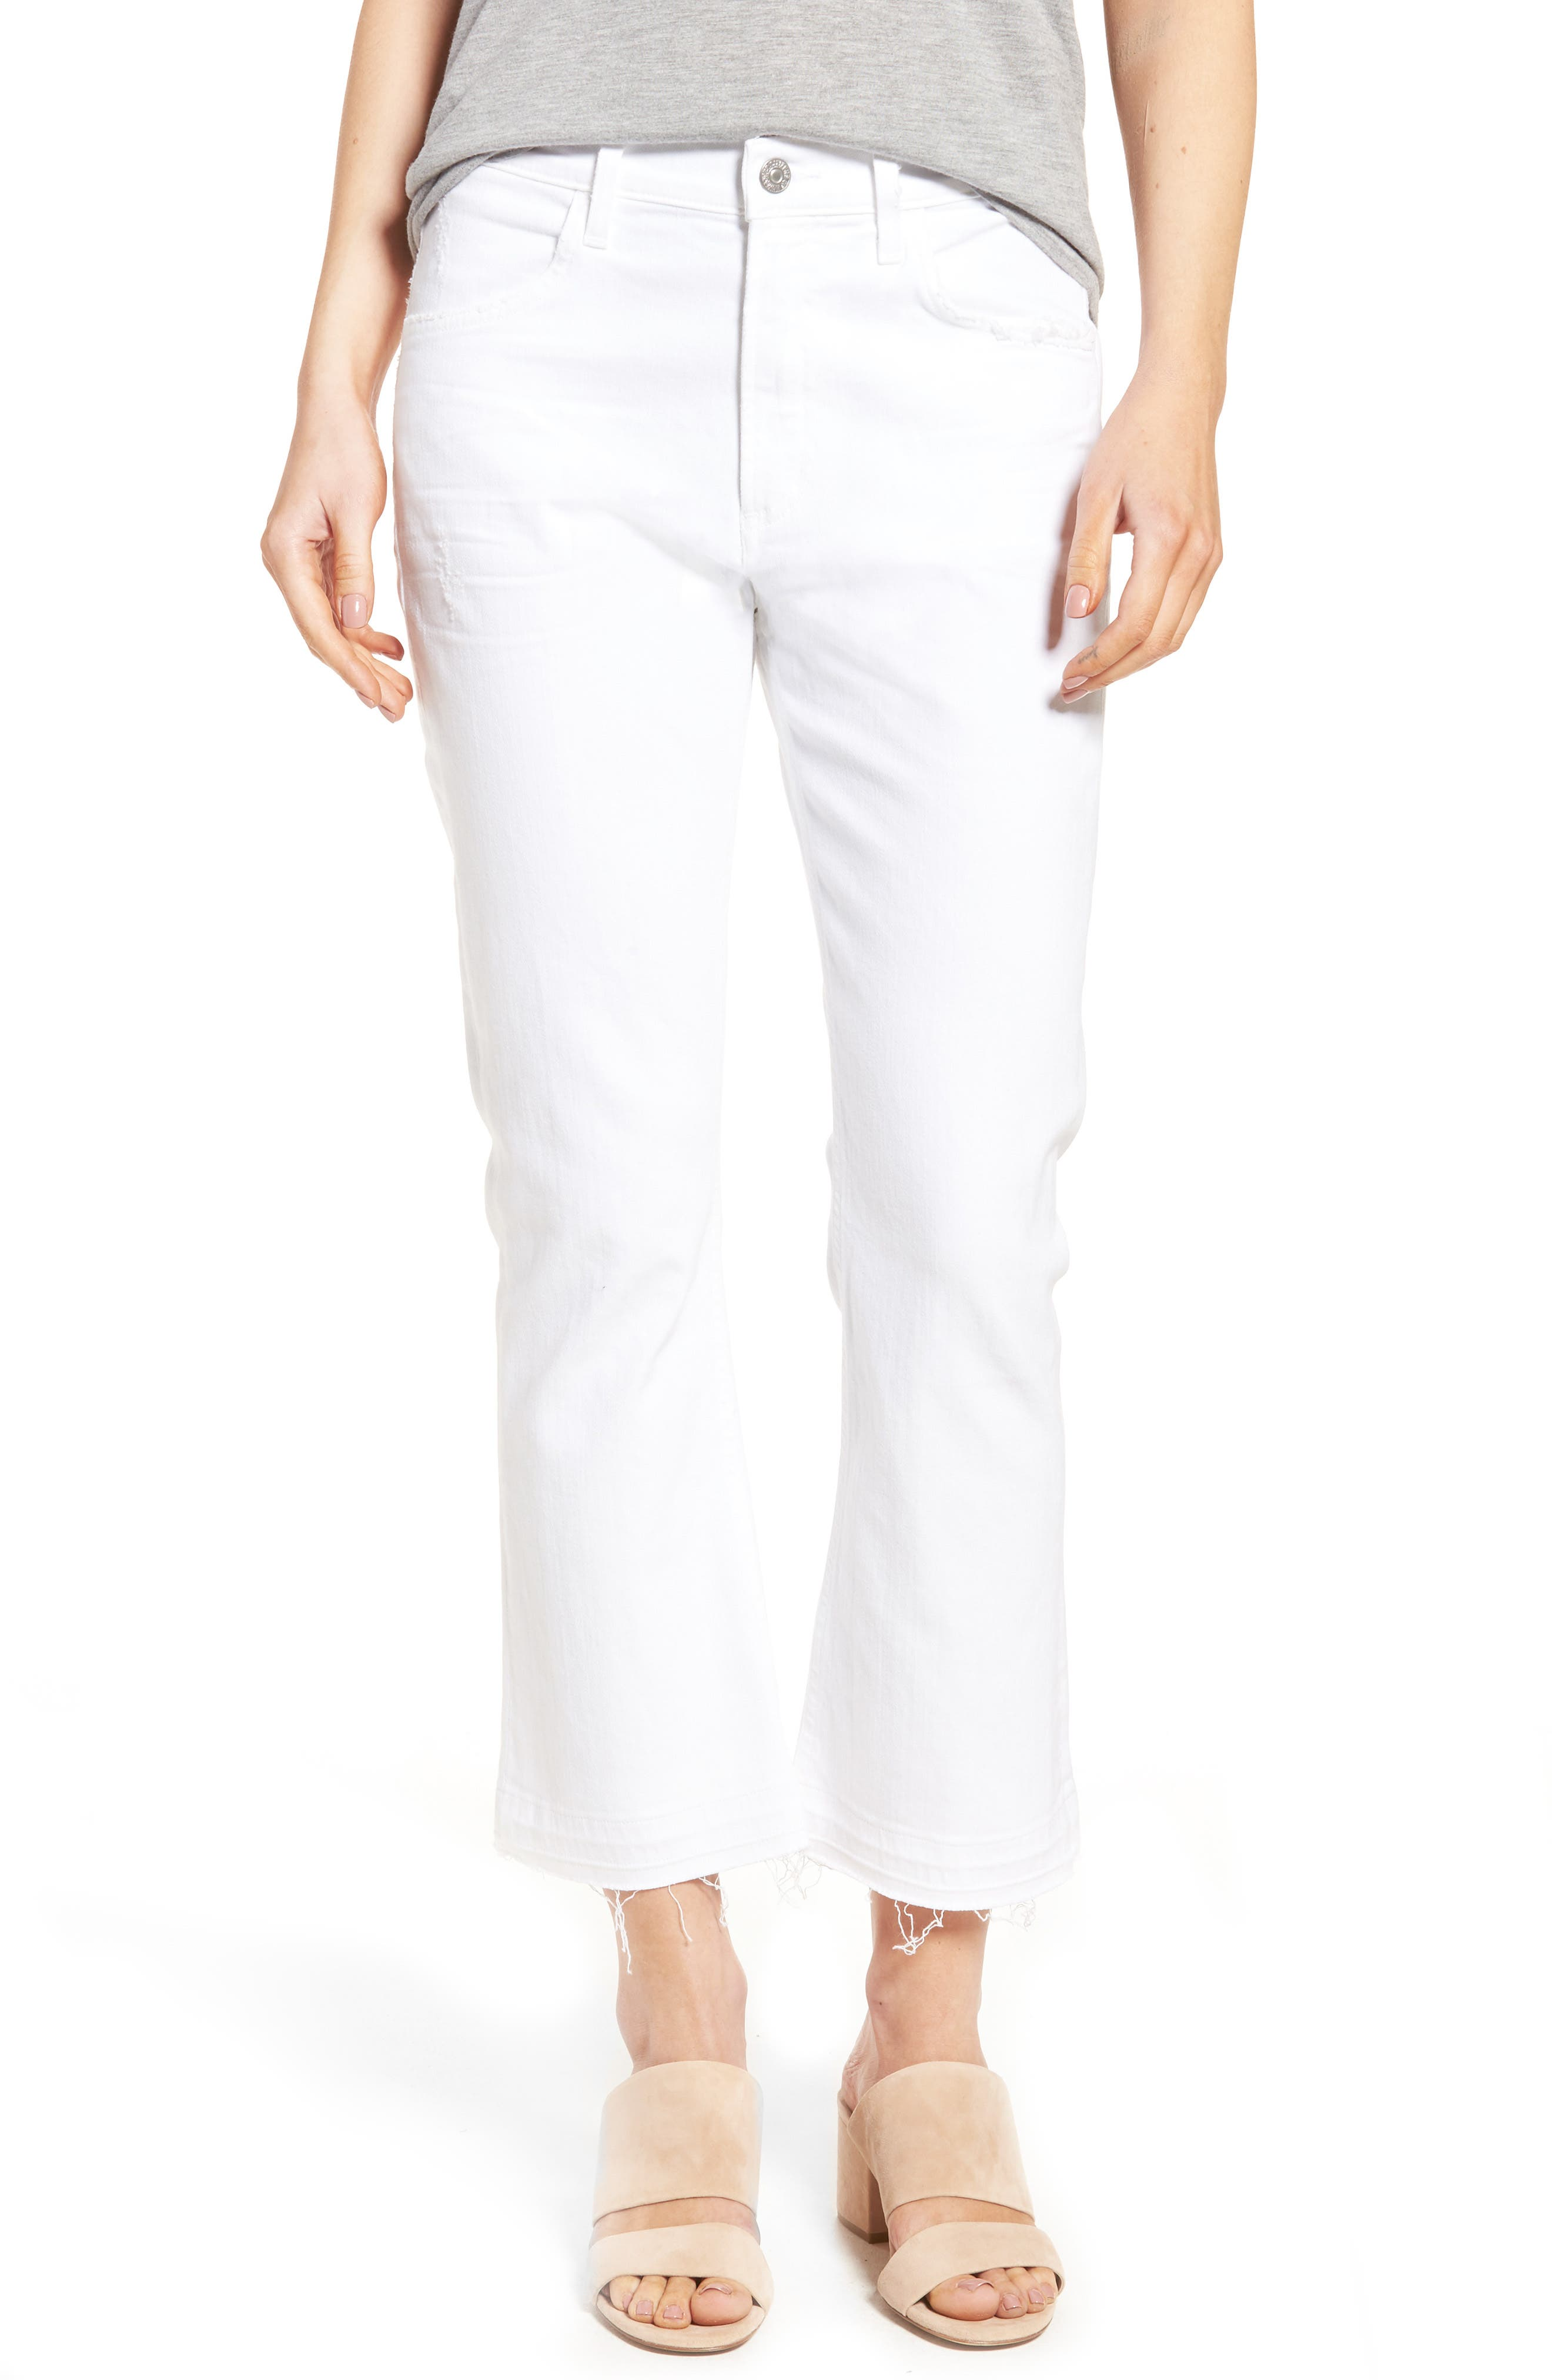 CITIZENS OF HUMANITY, Drew Crop Flare Jeans, Main thumbnail 1, color, DISTRESSED WHITE